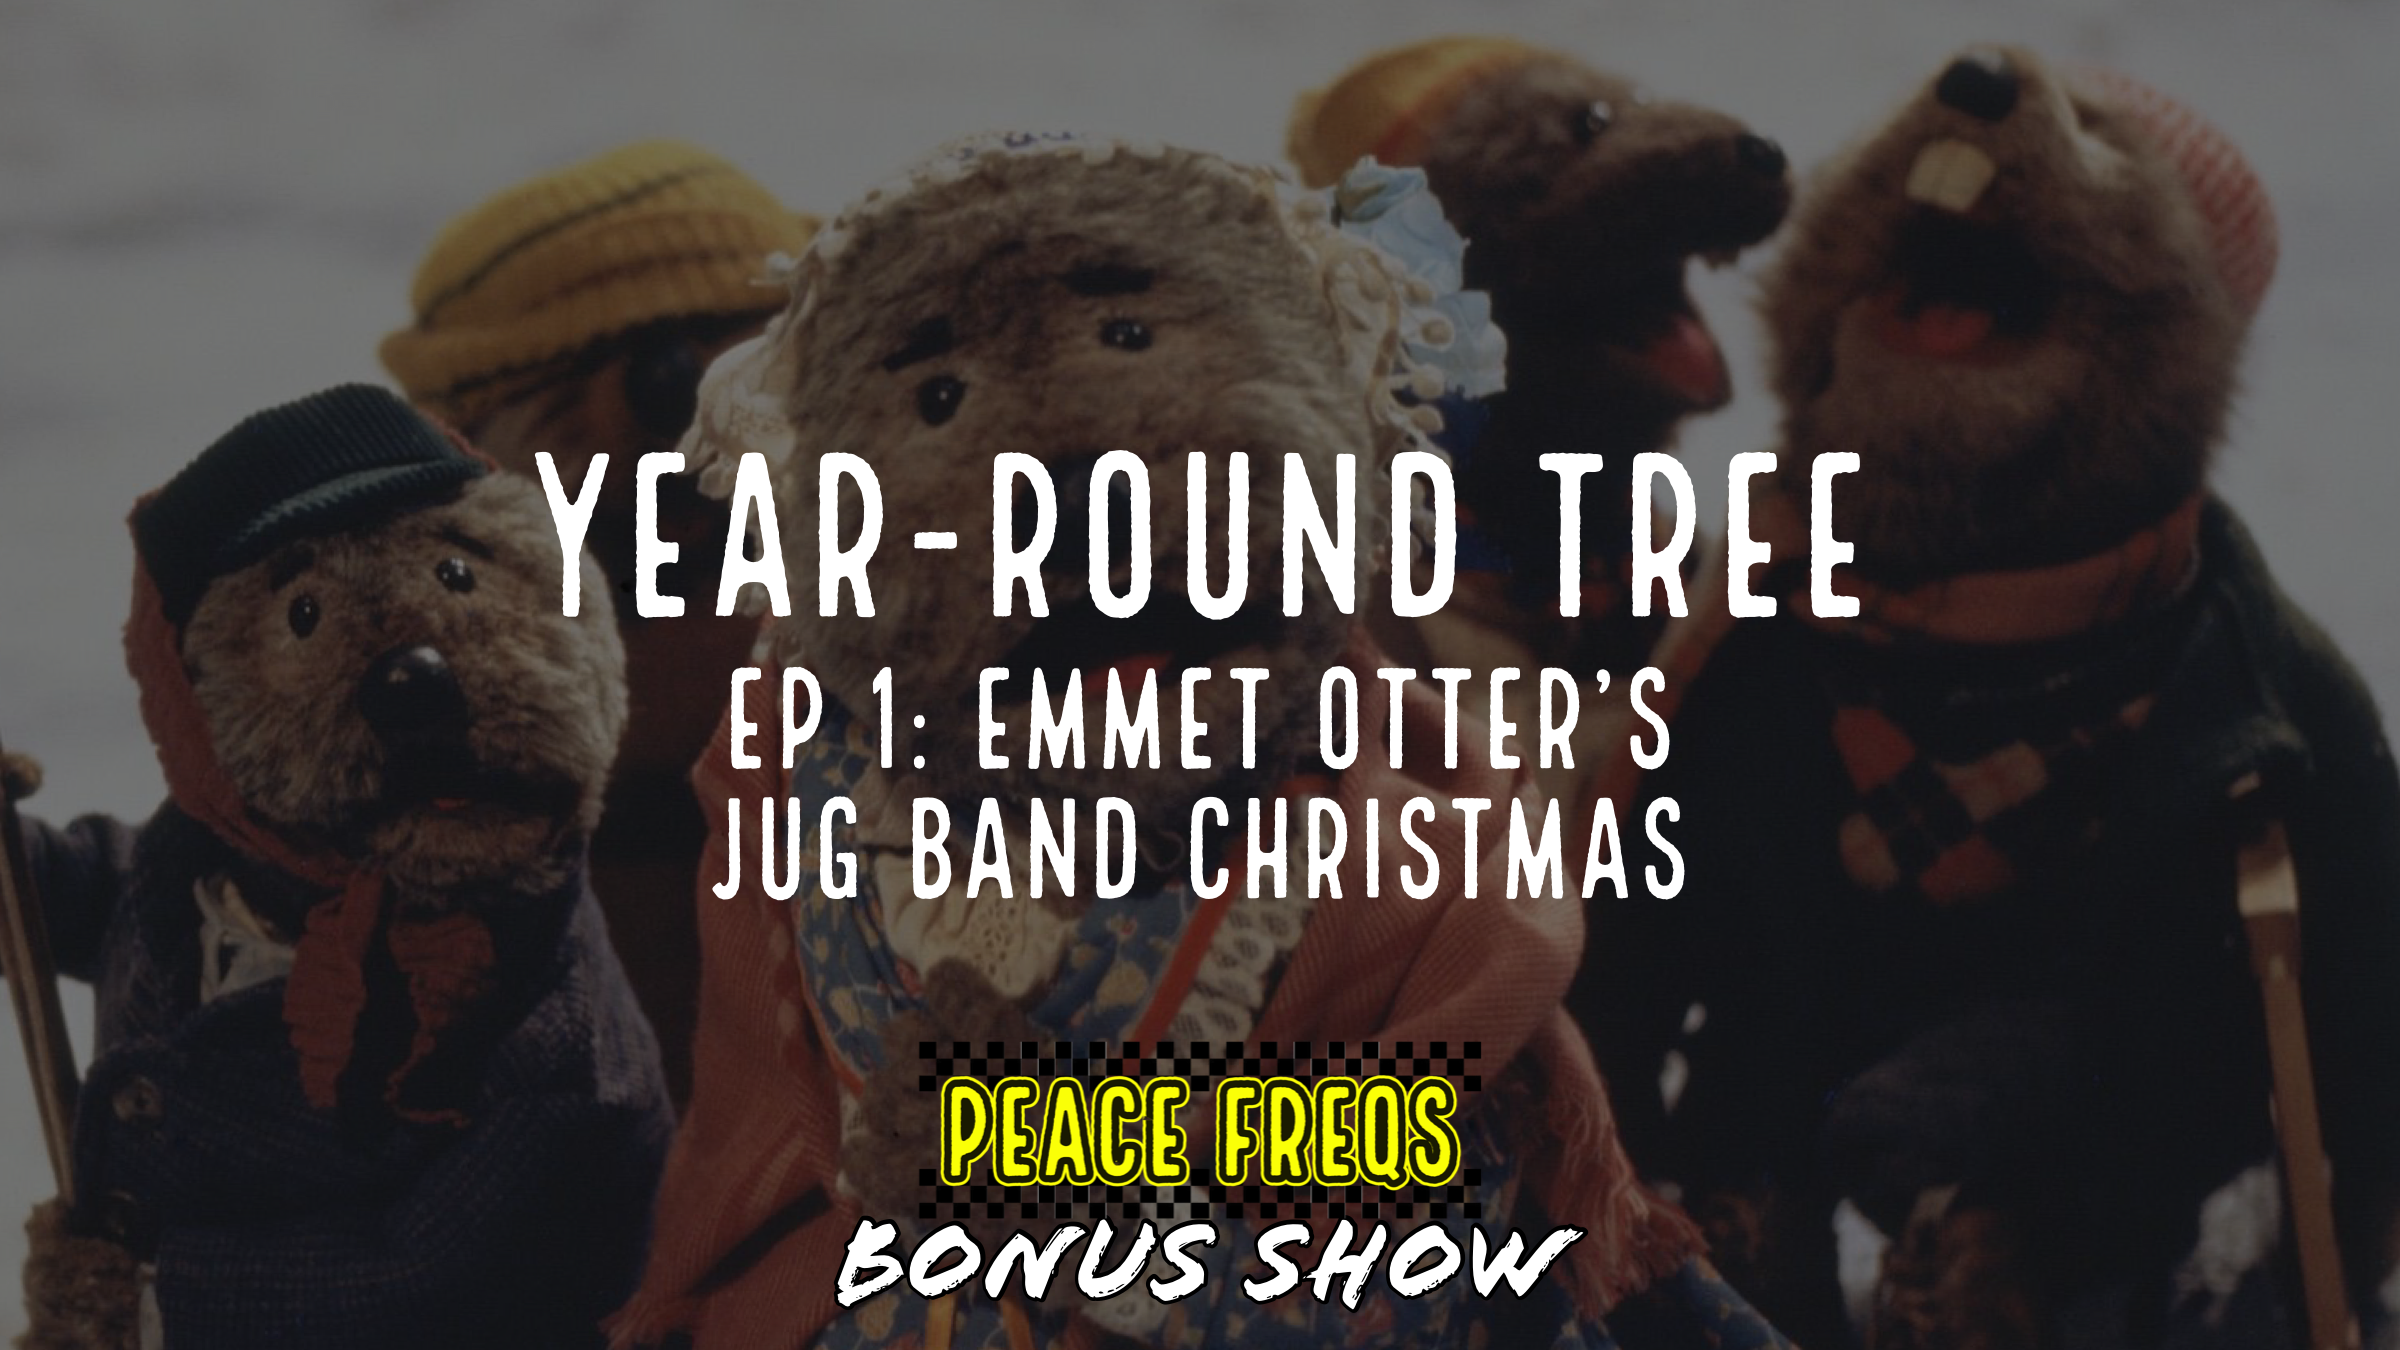 Emmet Otter's Jug Band Christmas Review – Year-Round Tree 001